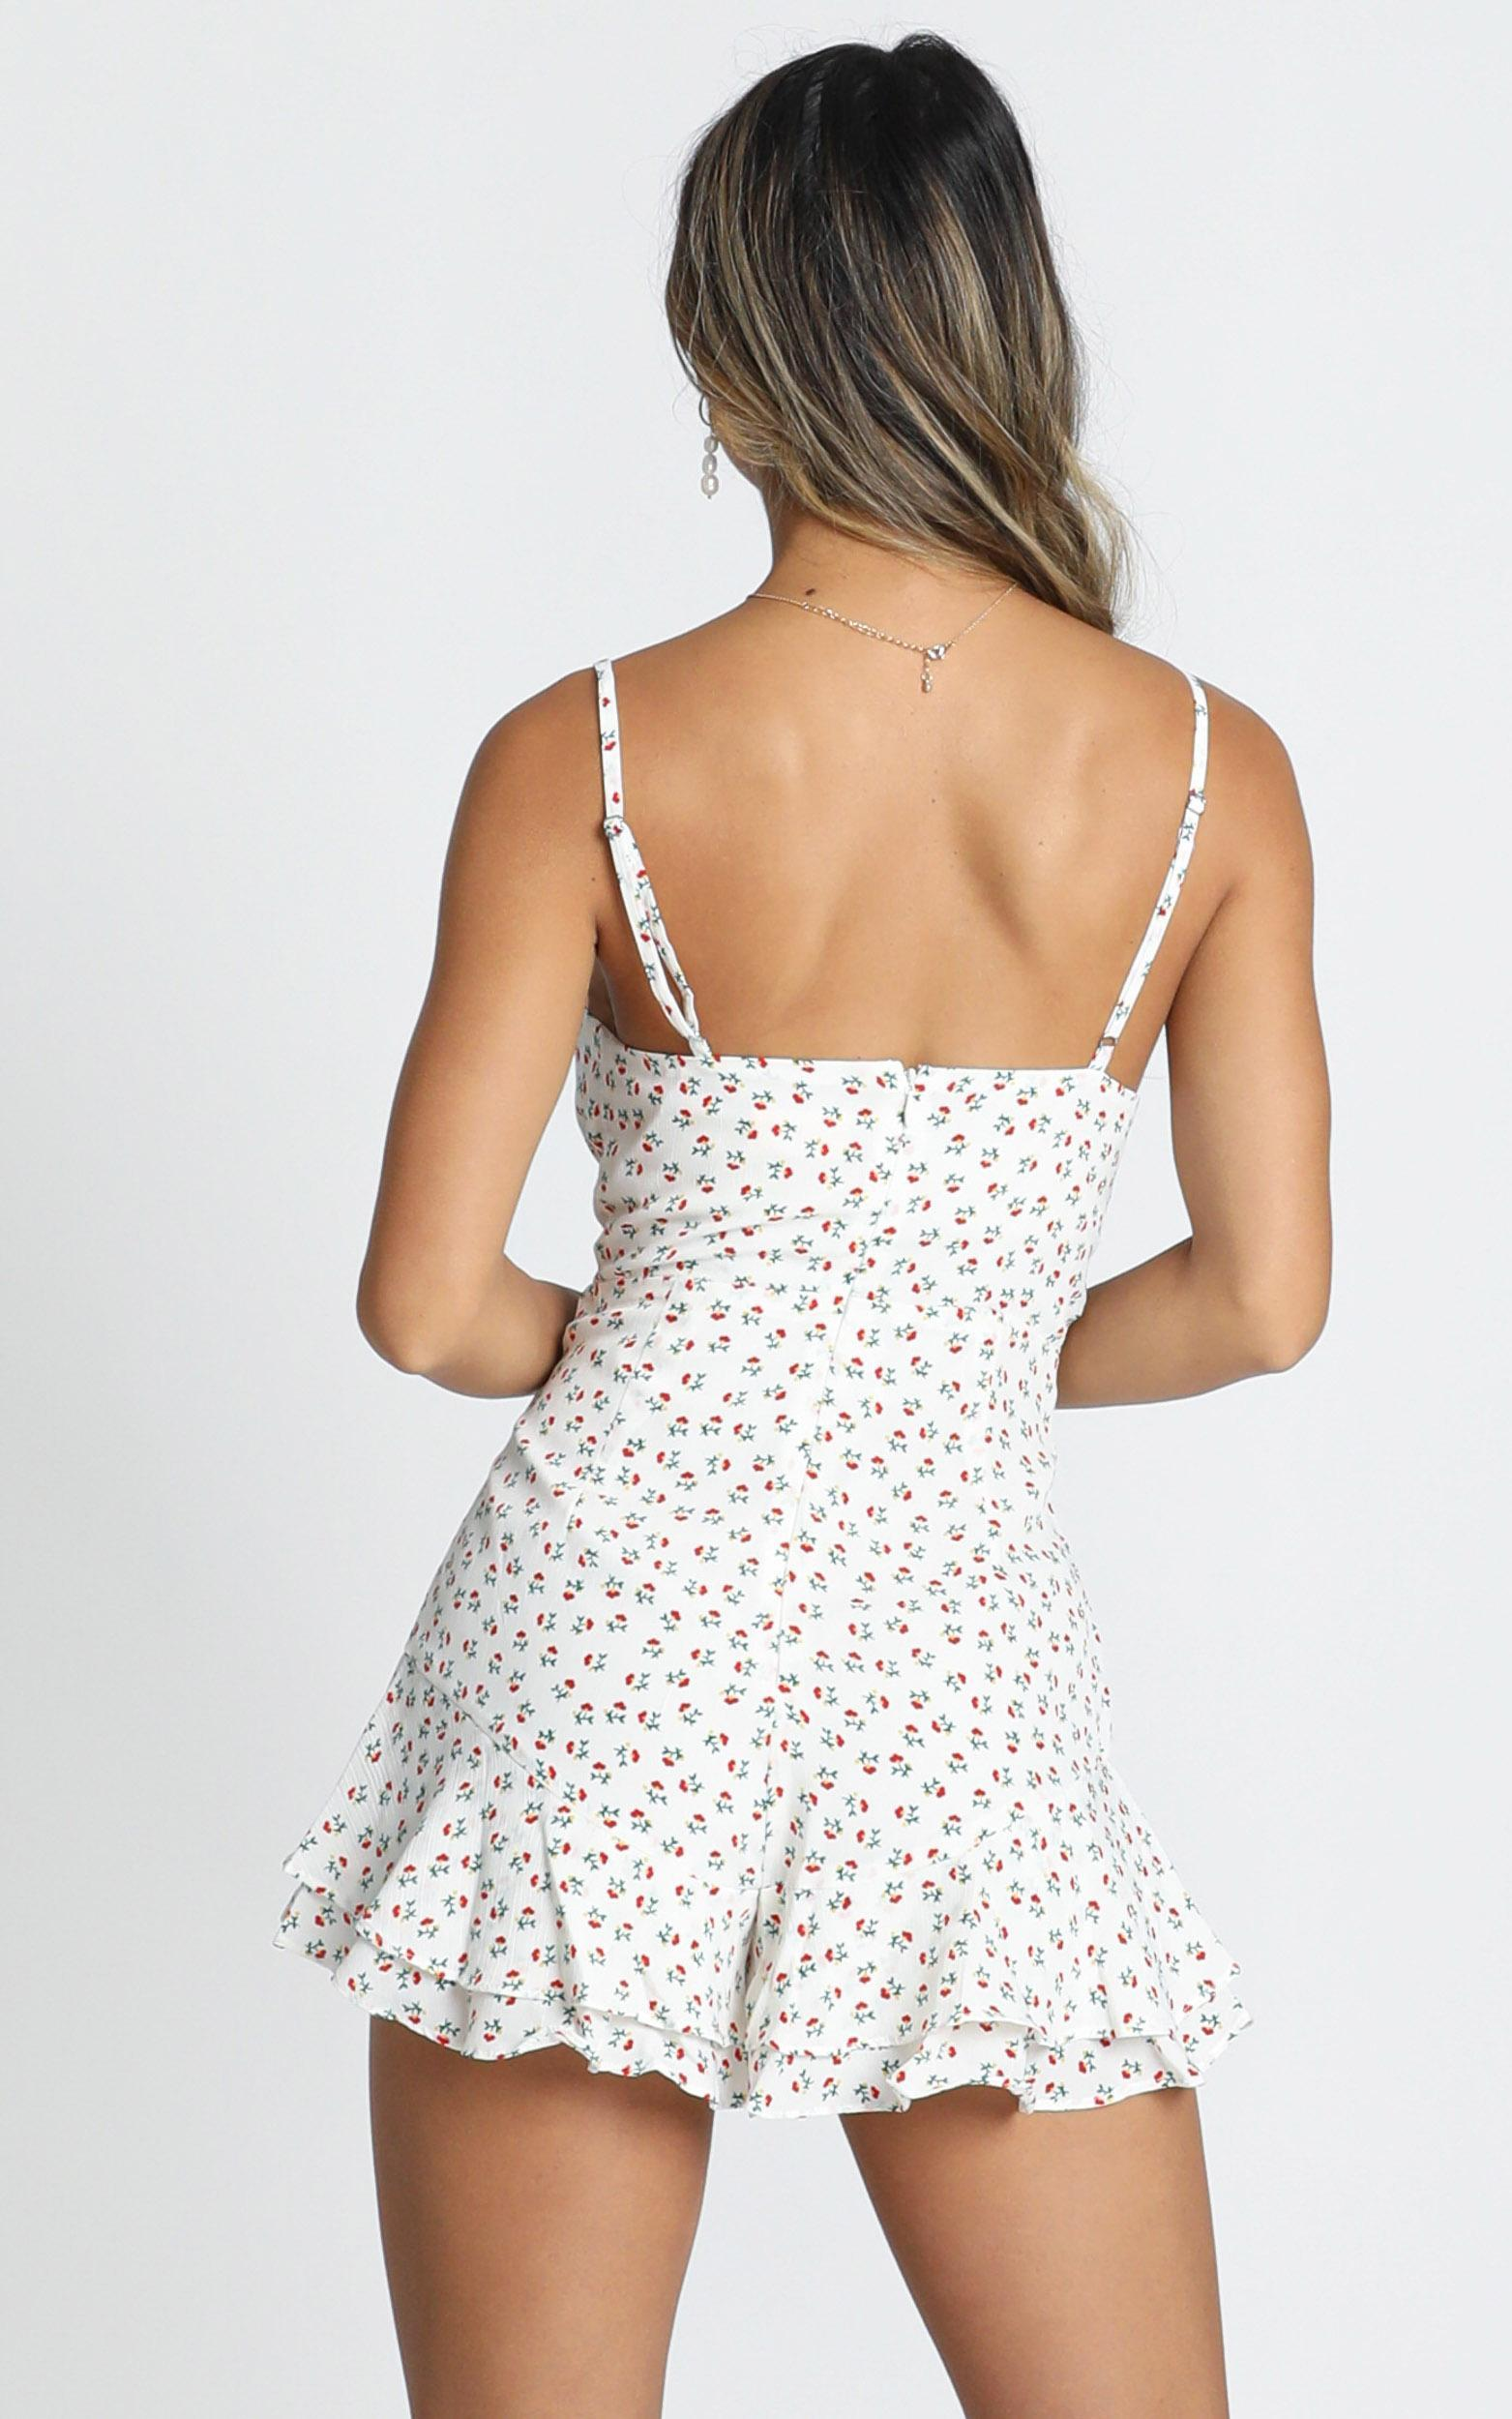 Fountain Of Youth Playsuit In white floral - 20 (XXXXL), White, hi-res image number null